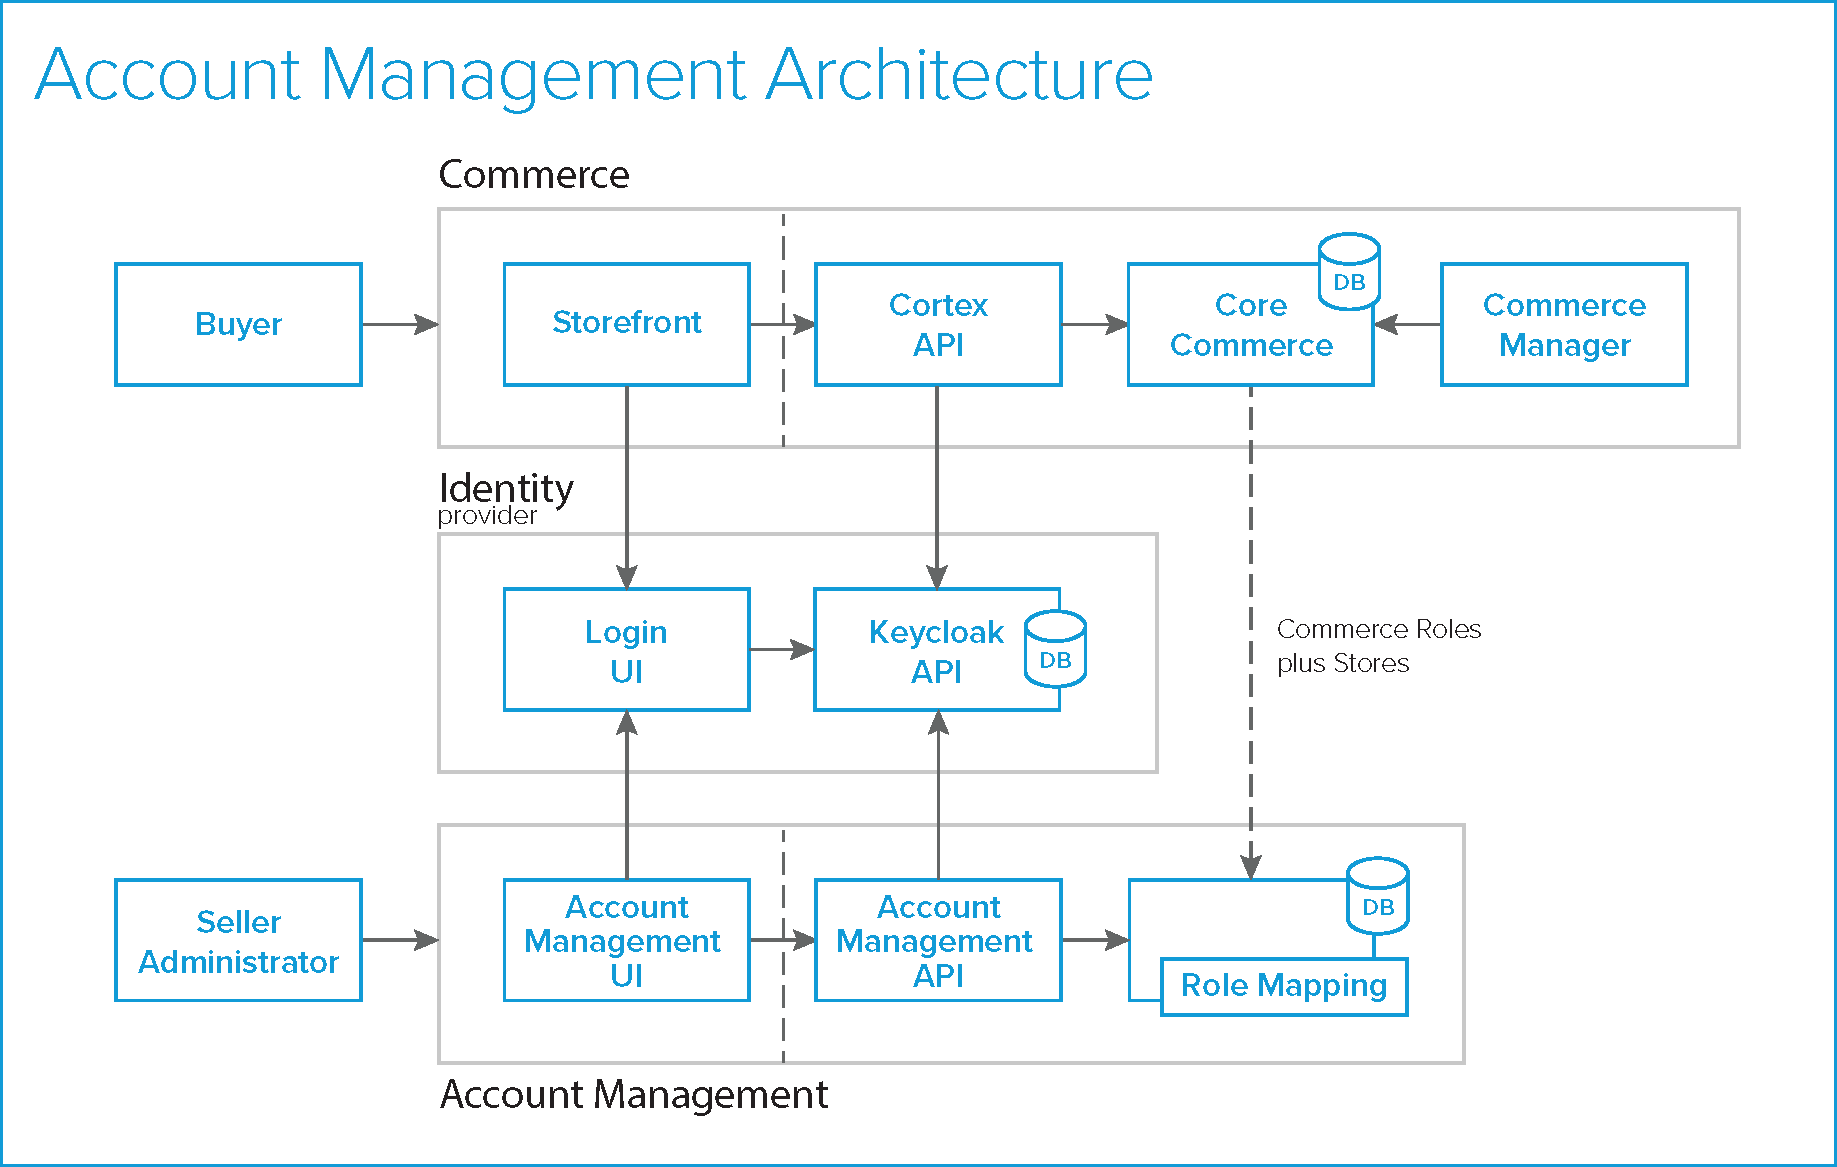 Account Management workflow overview